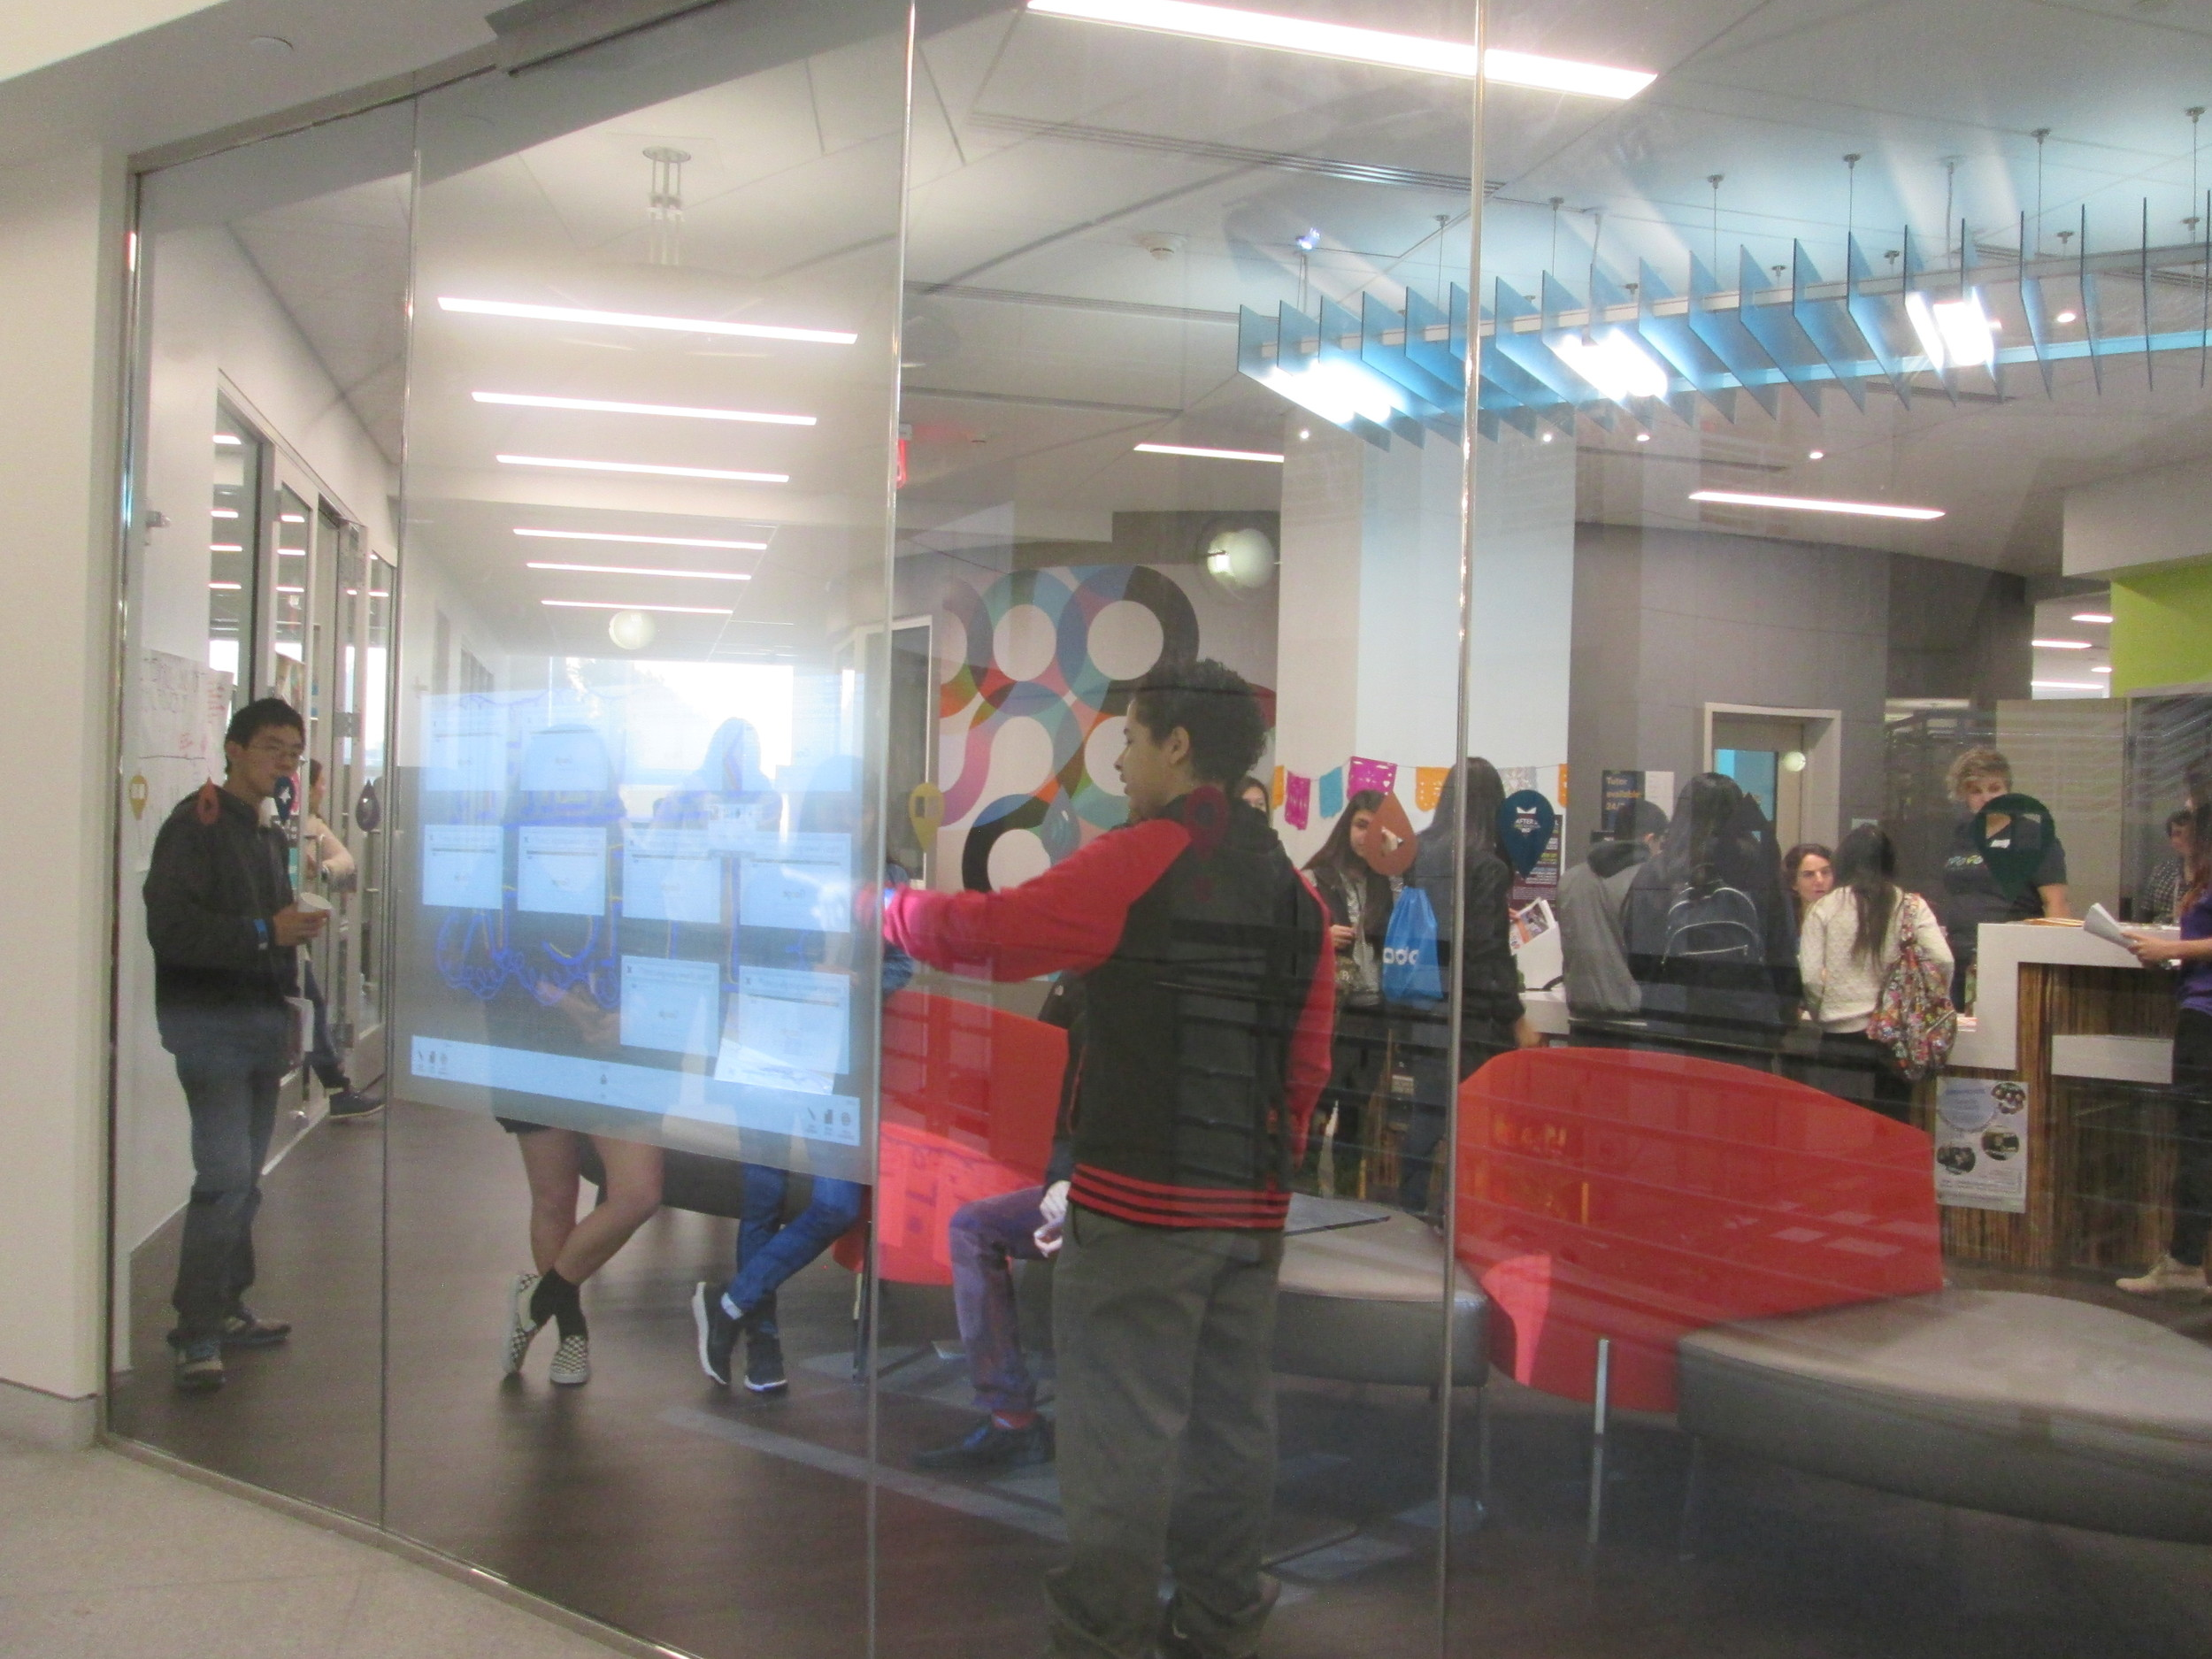 Welcome to The Mix at SFPL: Digital Wall